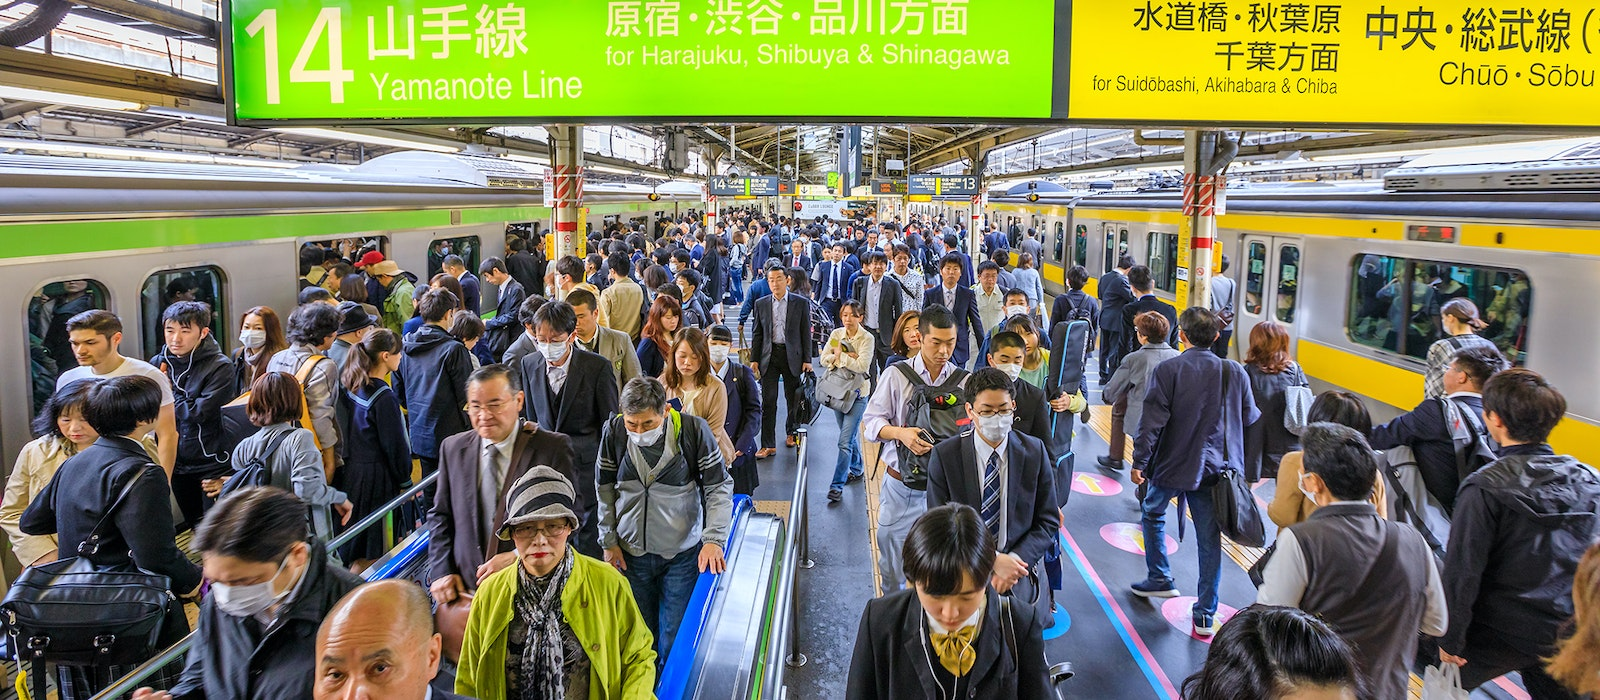 The platform at Shinkjuku Station where Tokyo's Yamanote Line meets the Chuo Line, the seventh most crowded transit line in the world.